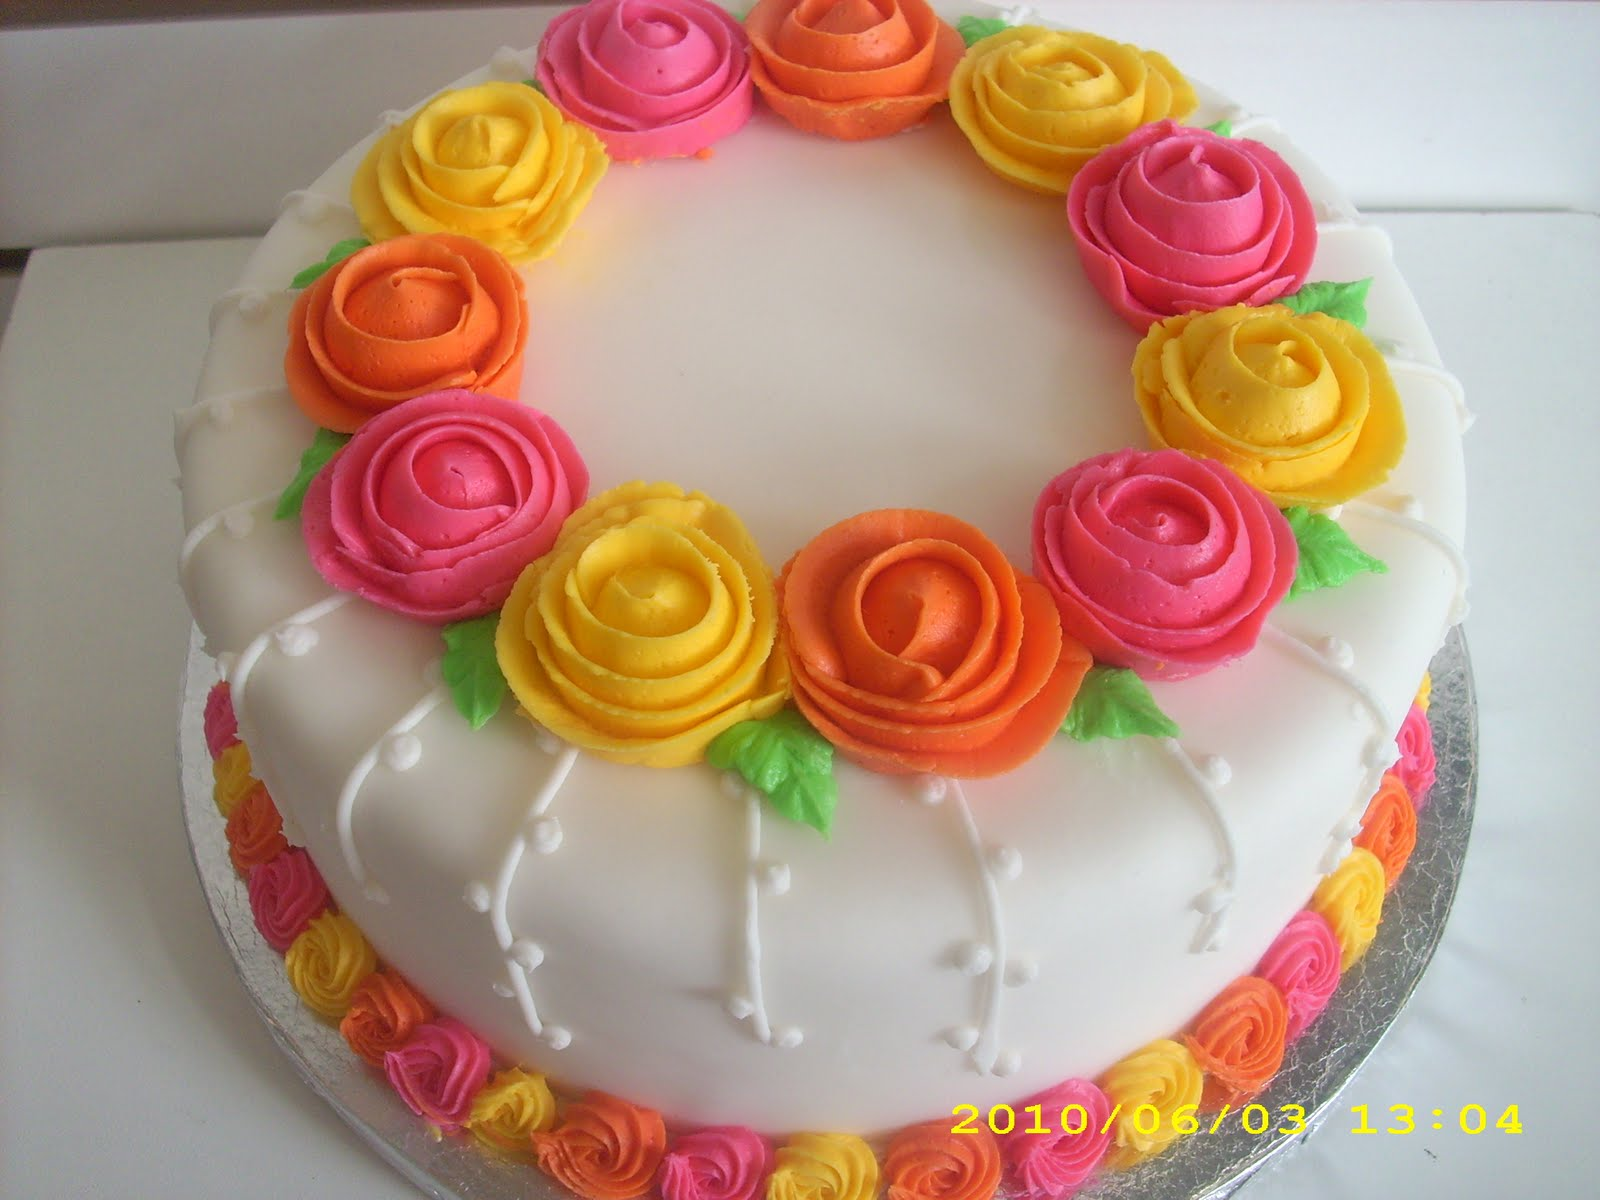 Cake Decorating : Cake-A-Thon: Decorating Basics Wilton Method Course